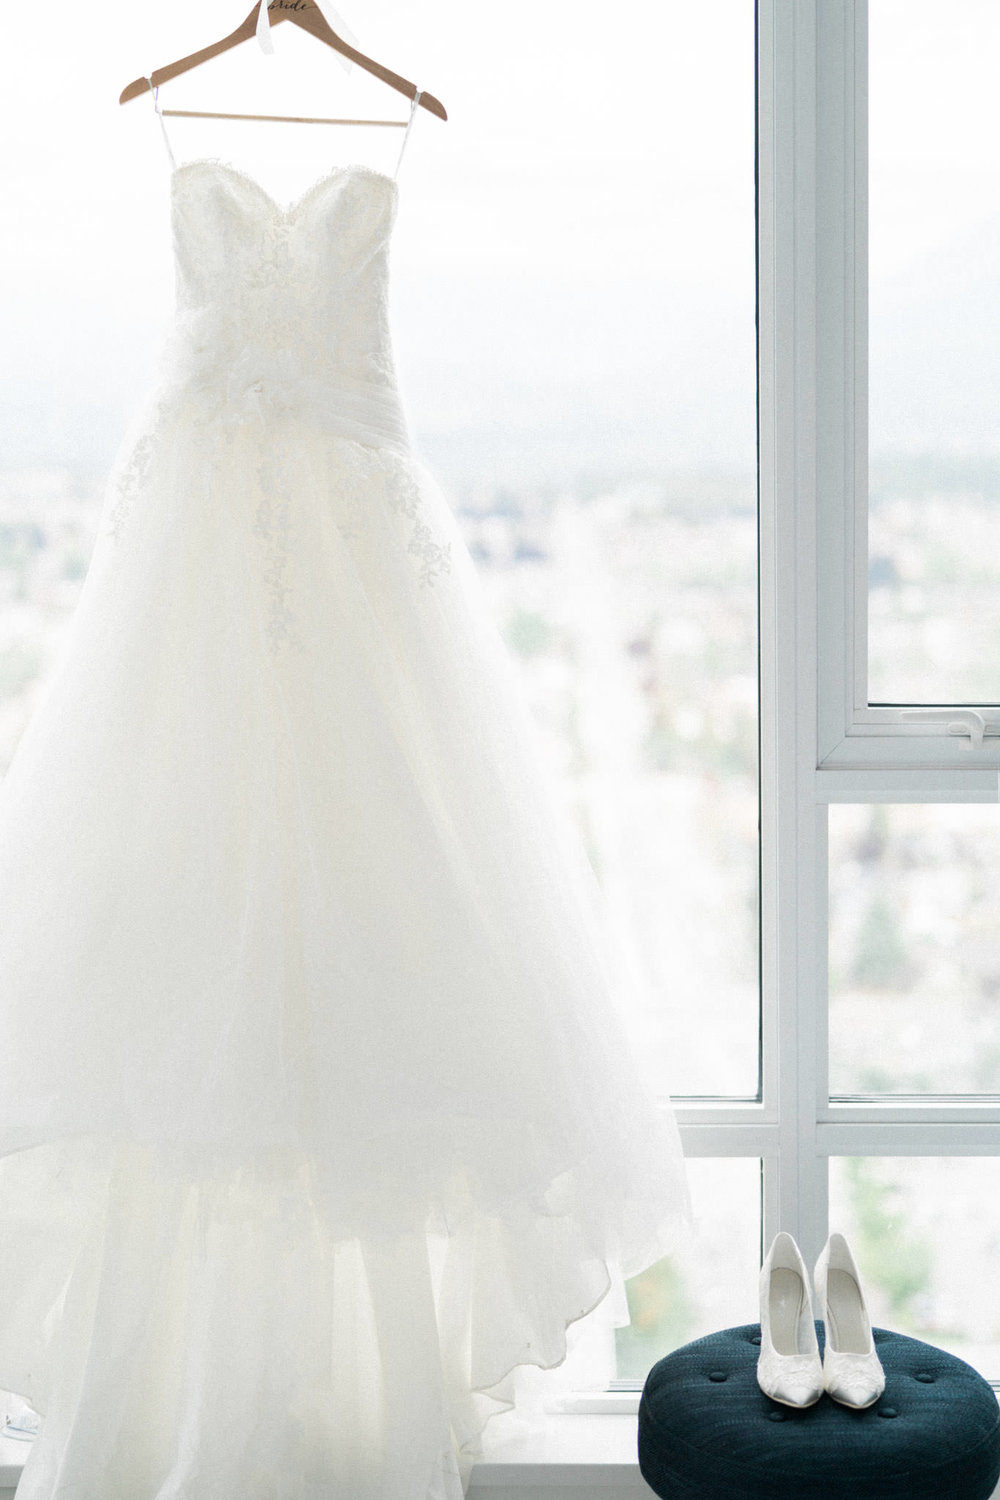 Wedding dress and shoes by the window